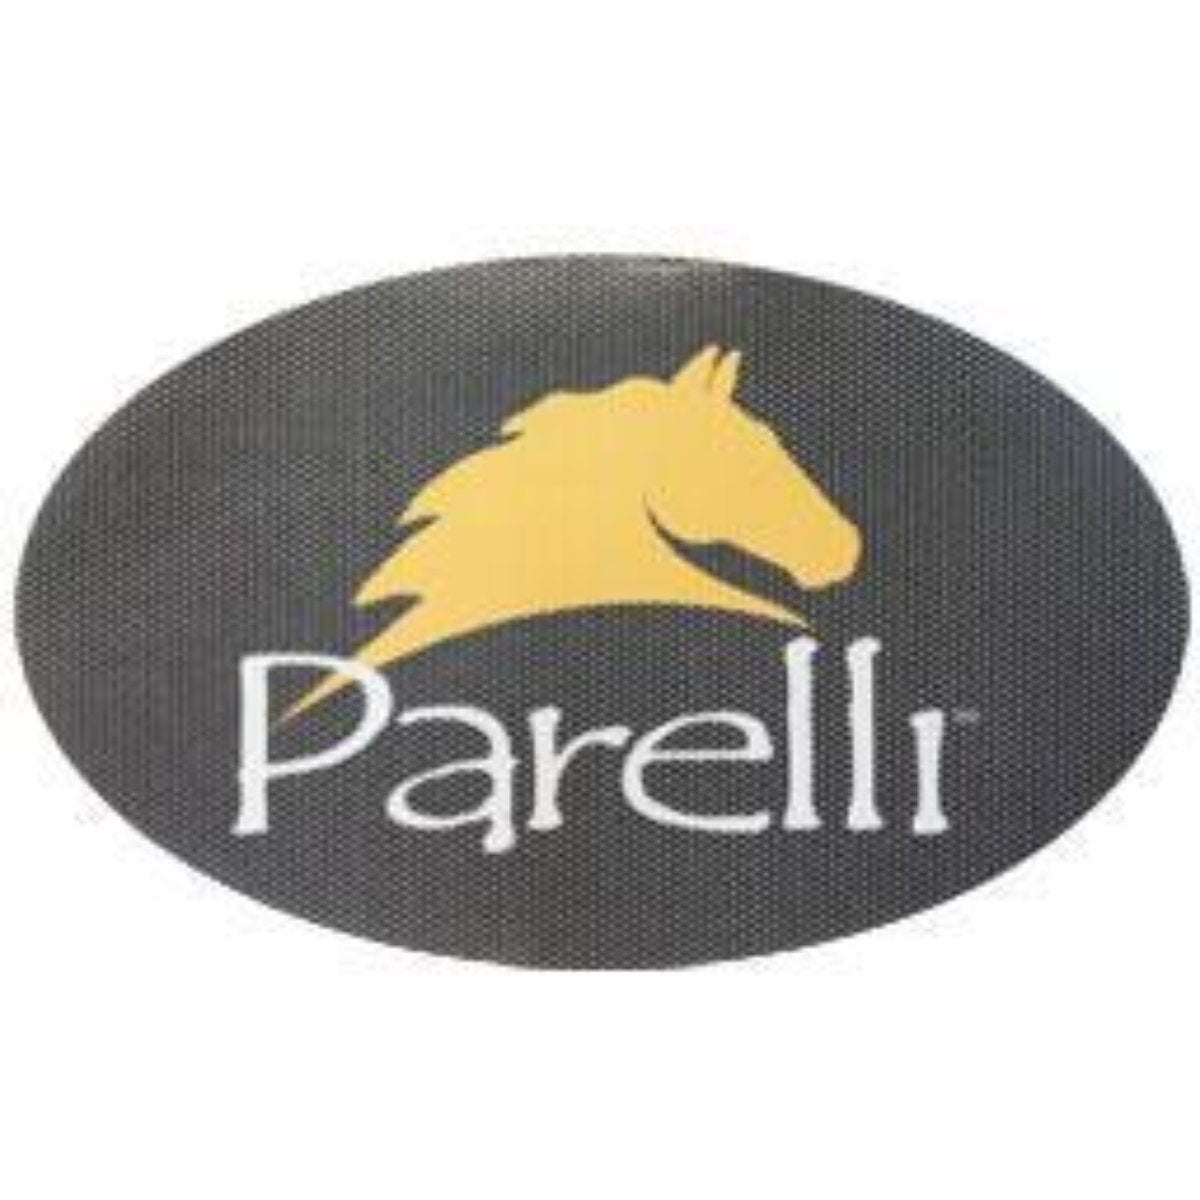 Parelli Logo Rear Window Decal